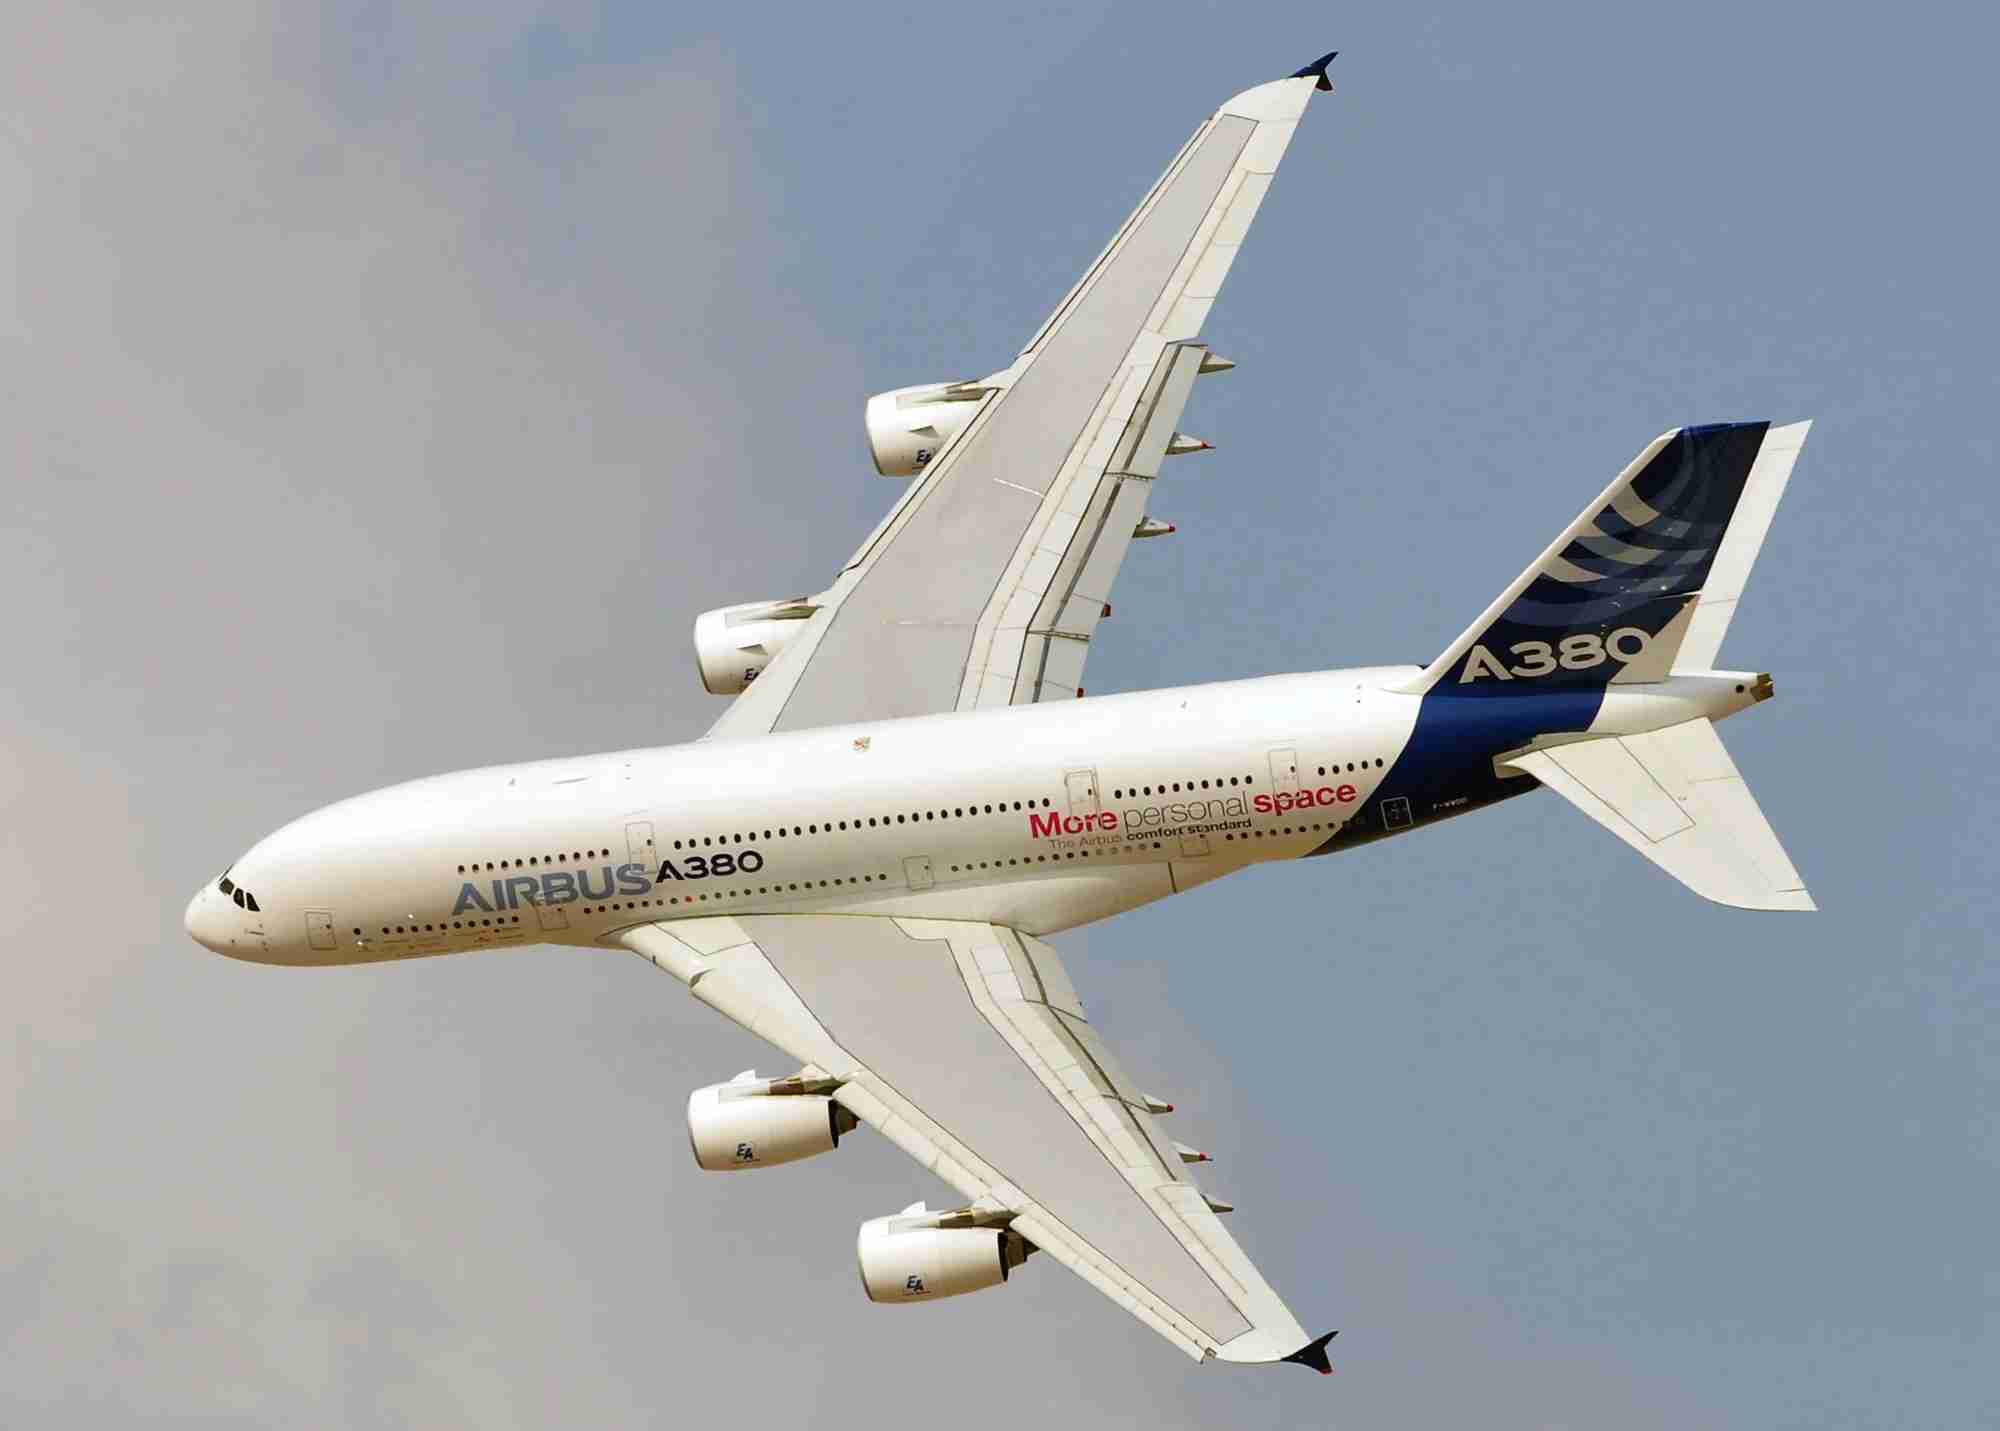 An Airbus A380 performing a flying display at the 2013 Dubai Air Show (Photo by Alberto Riva/TPG)